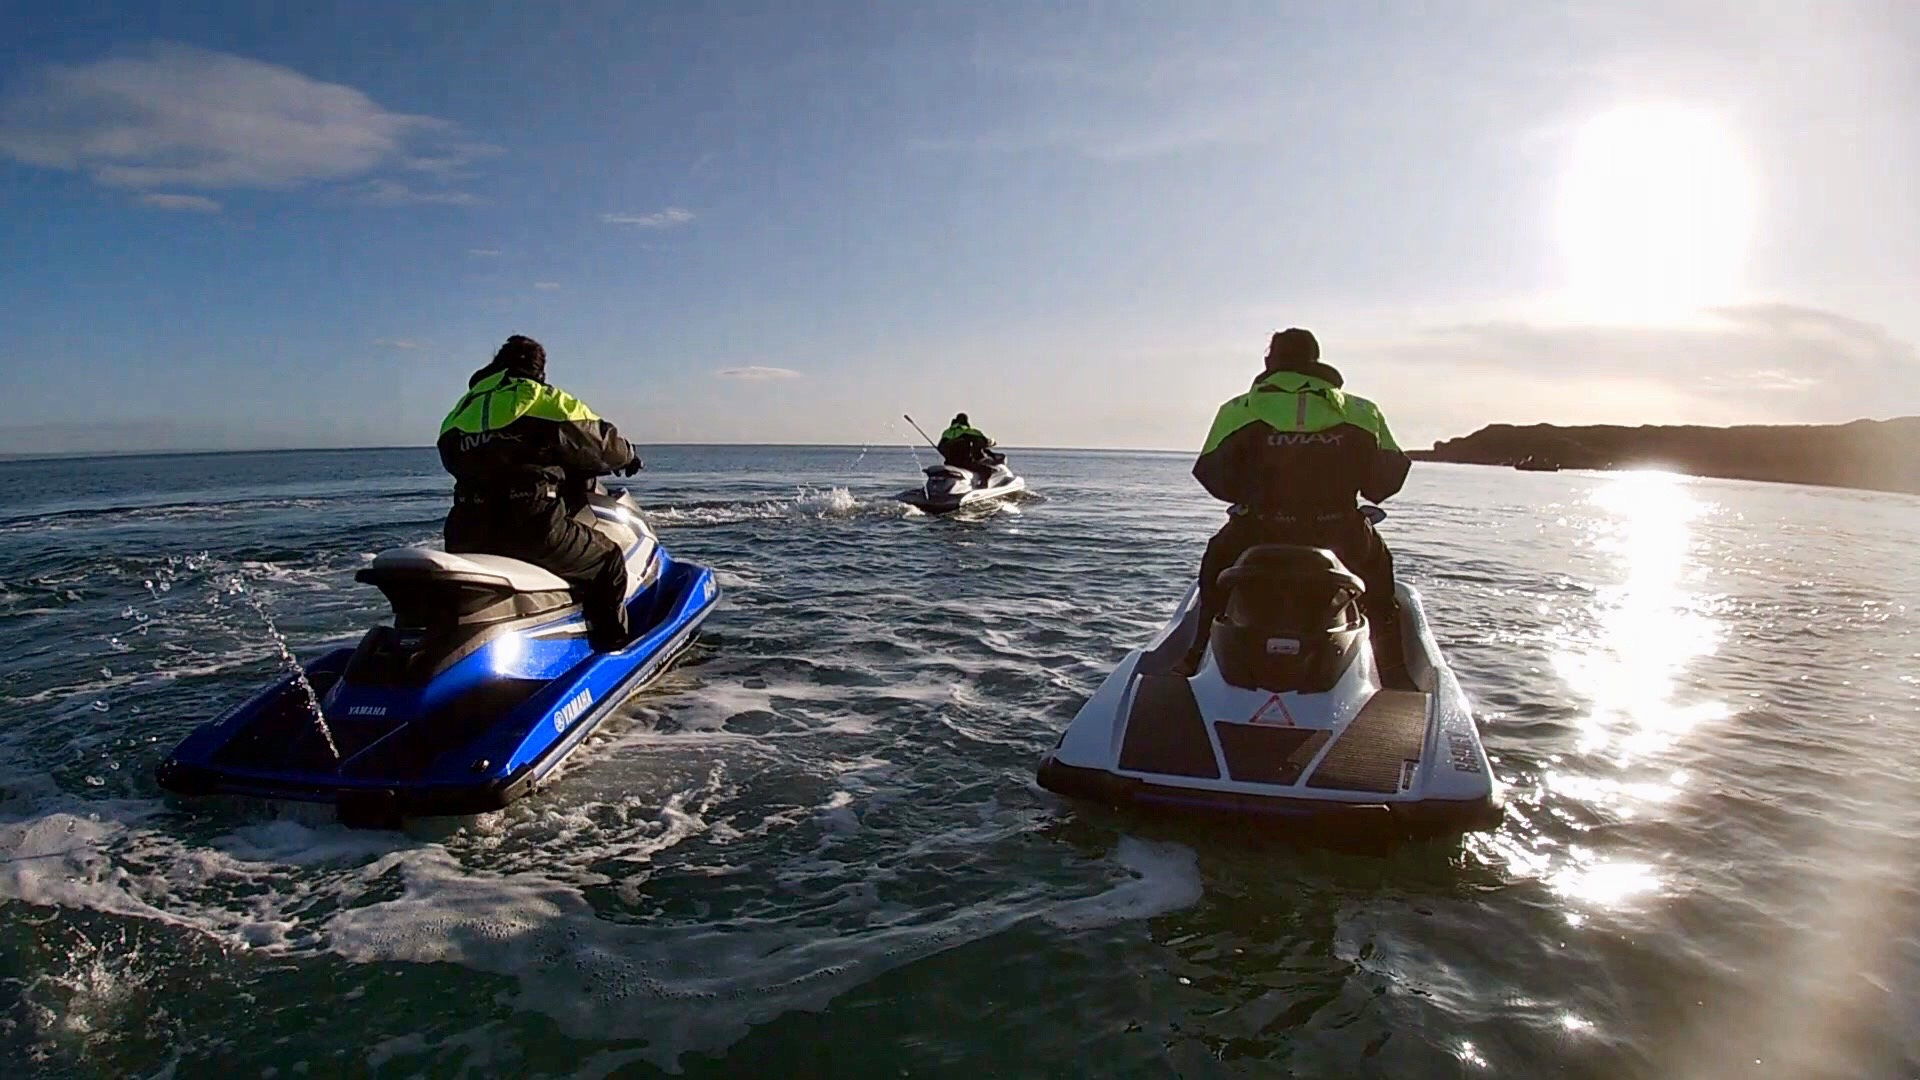 Testing the new Winter Jet Skiing Suits